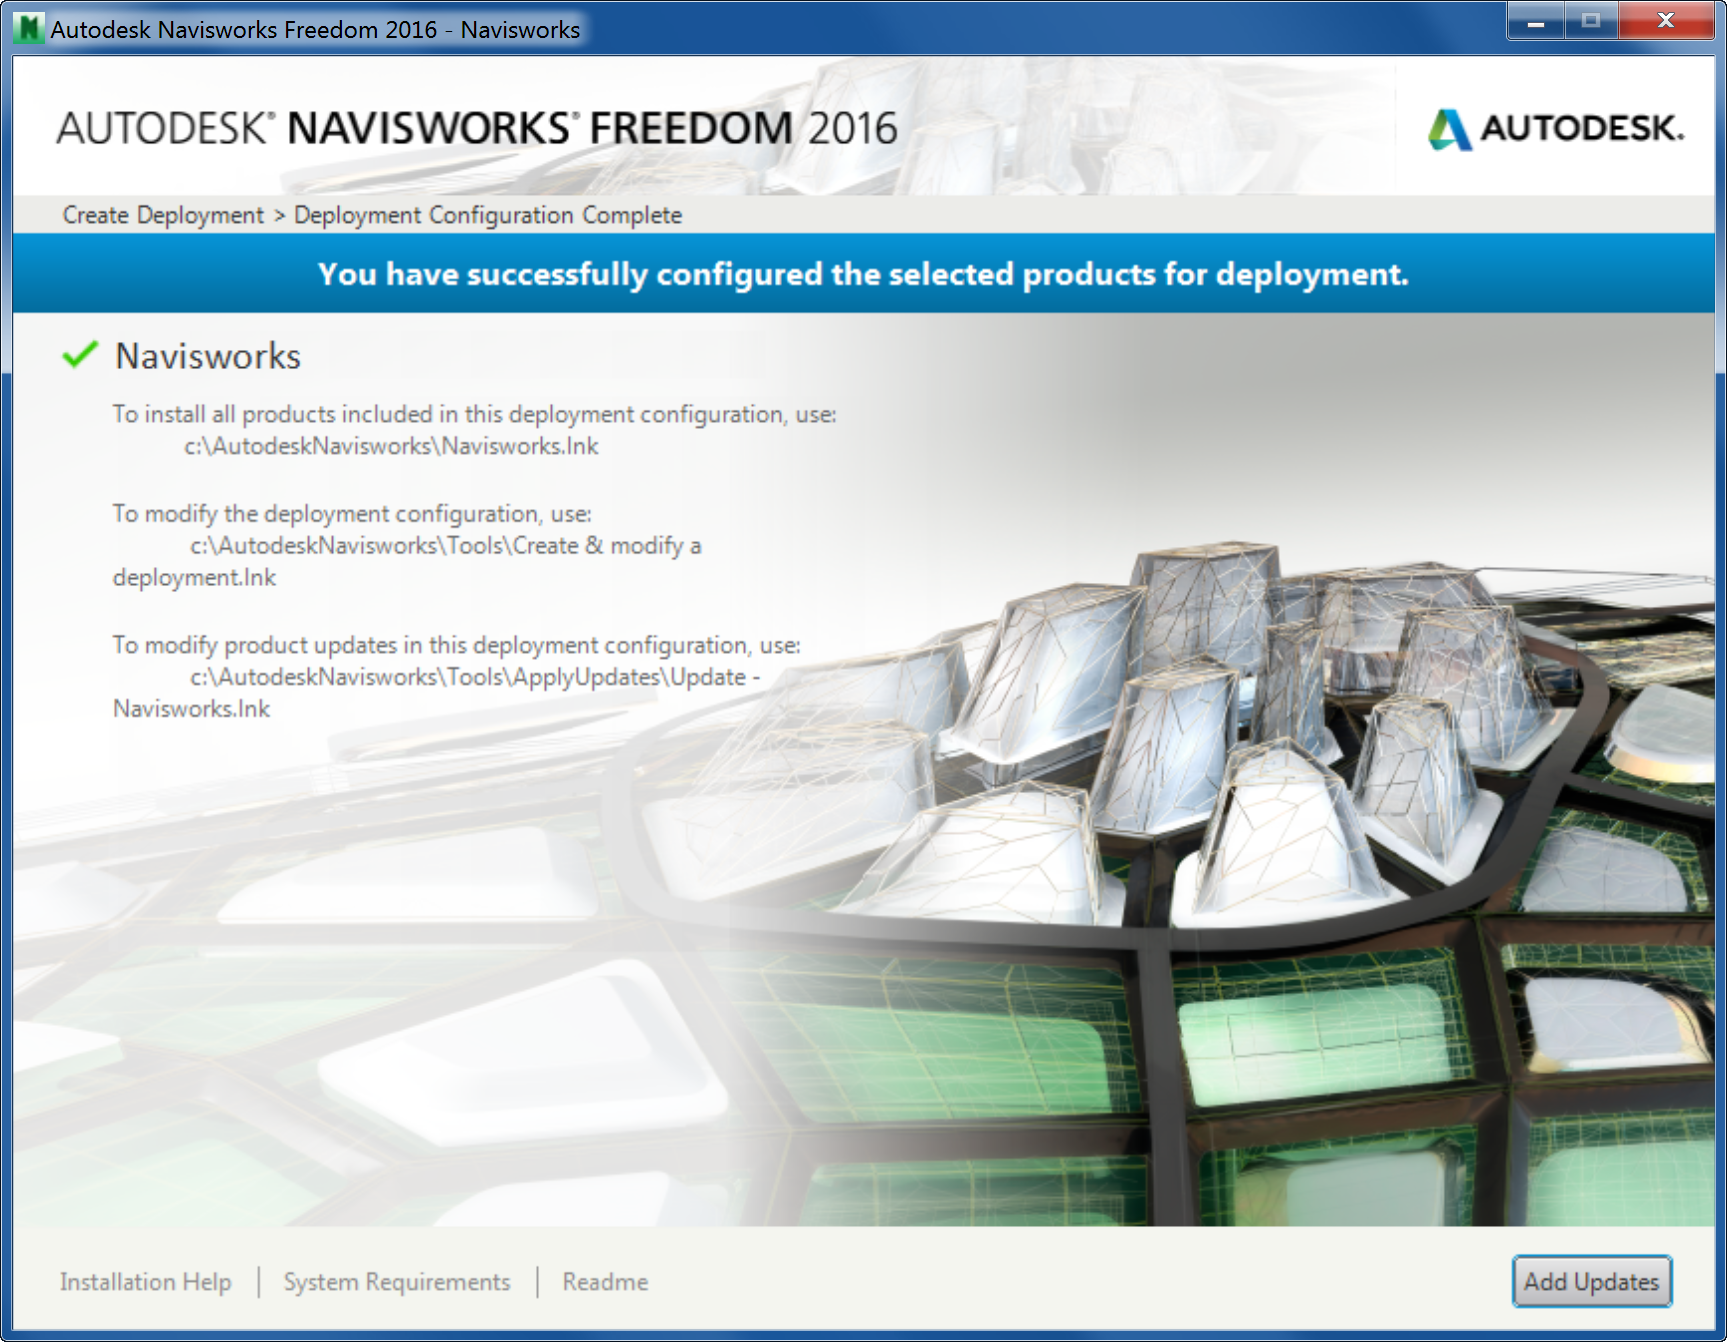 Autodesk Navisworks Freedom 2016 - Applications